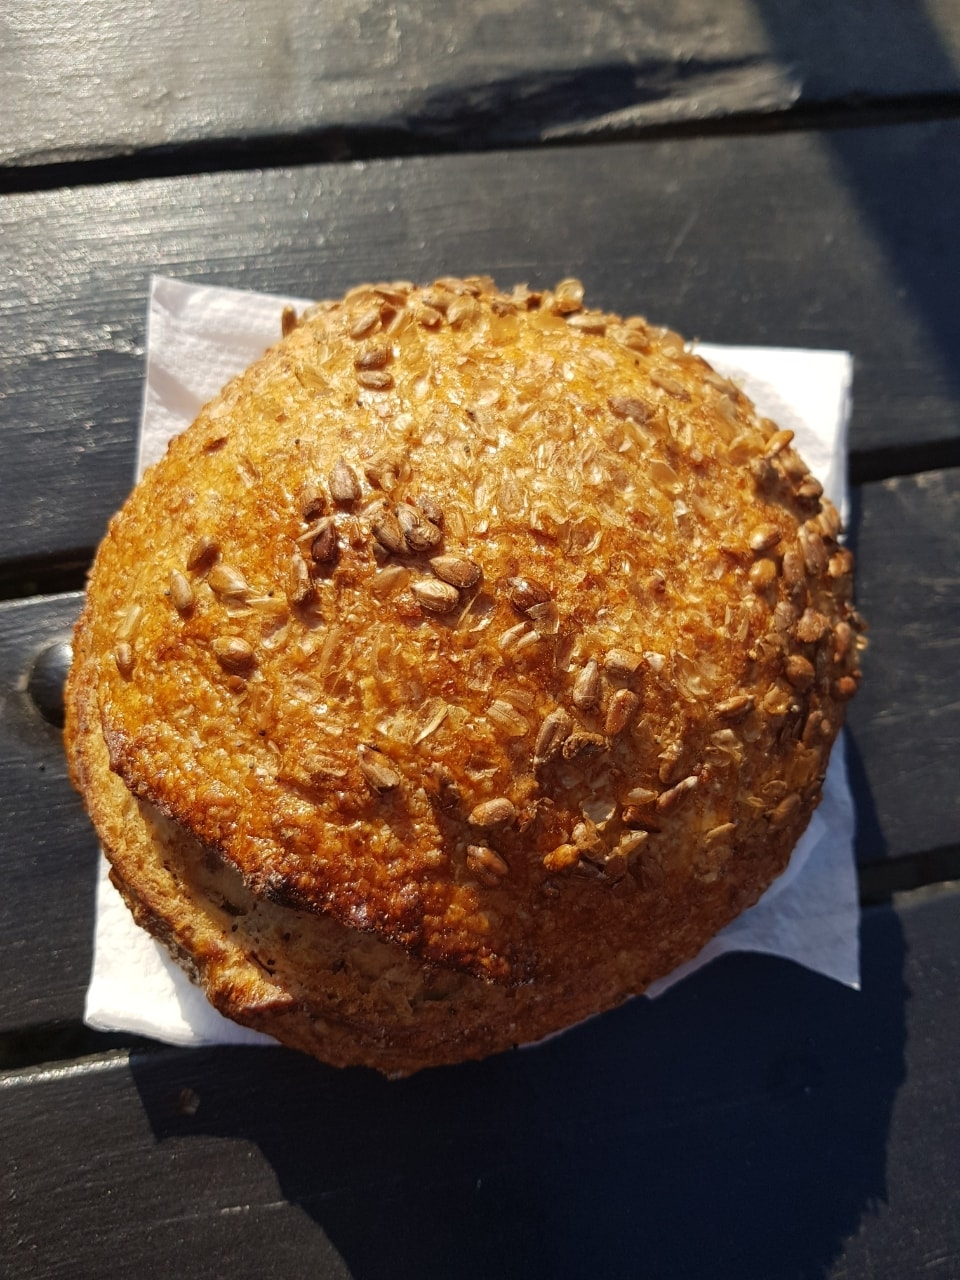 Round loaf of bread from Les Petits Boudains